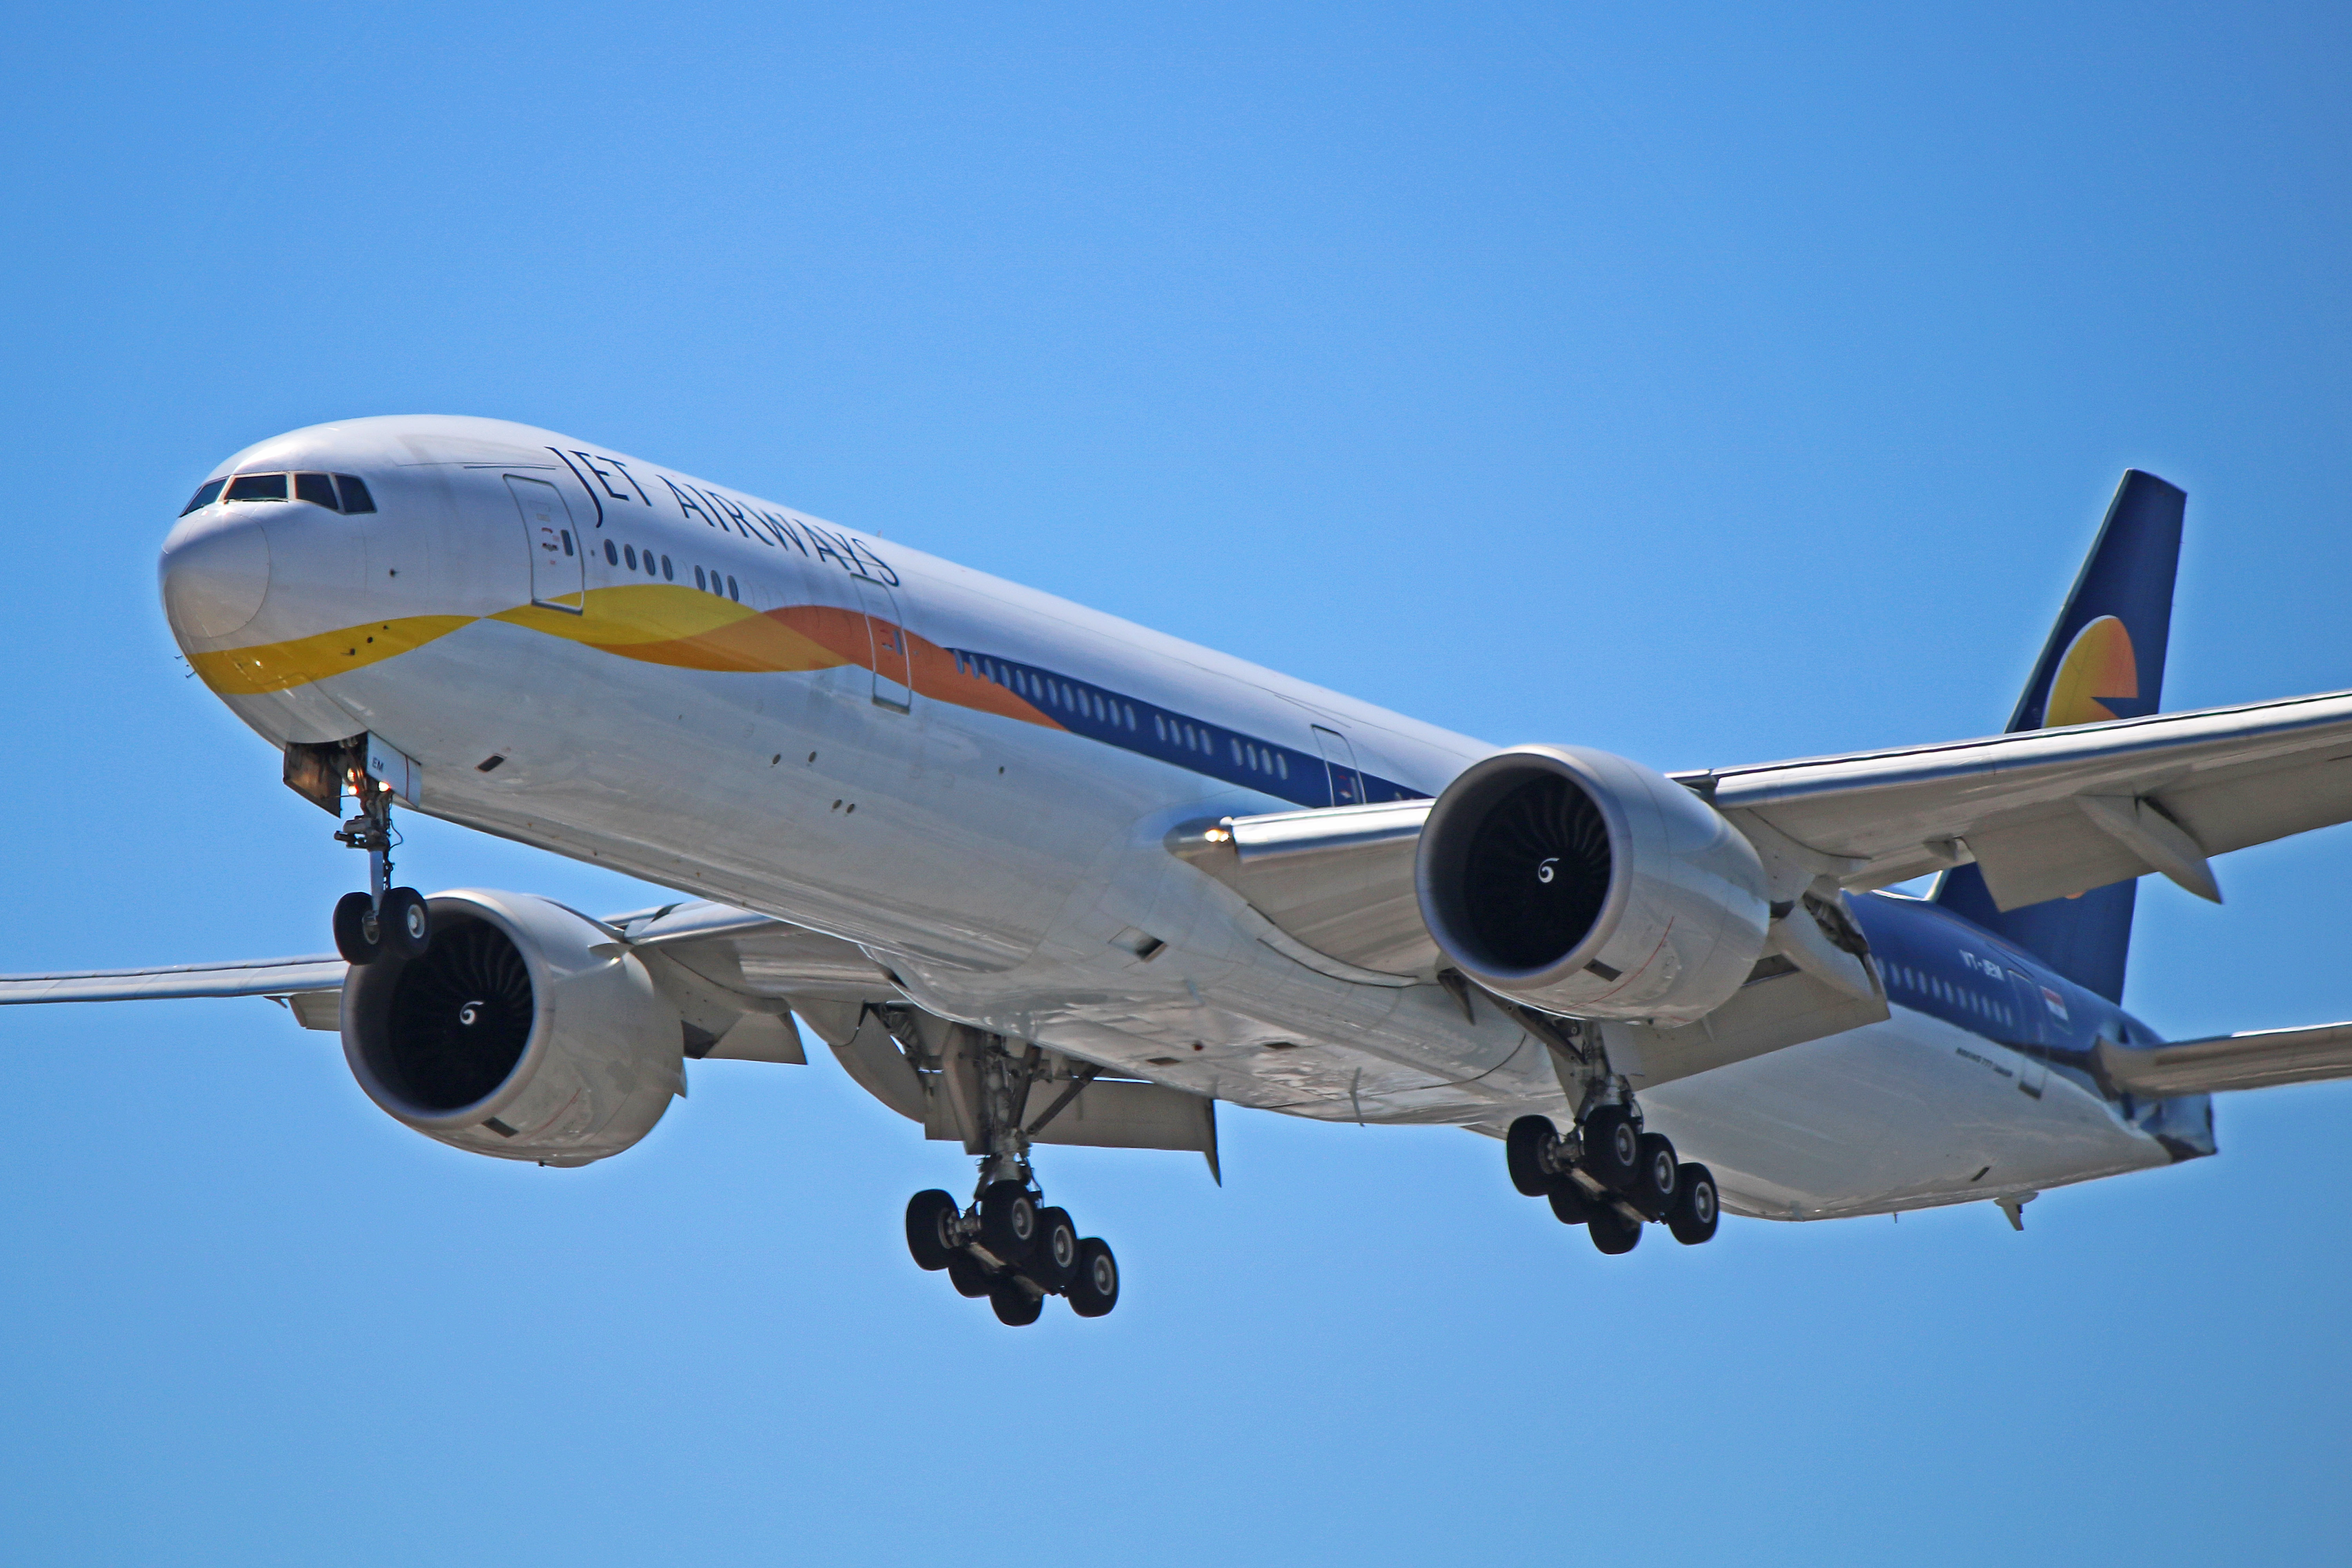 Boeing 777-300ER: Comparing The Seating Capacity Of Several